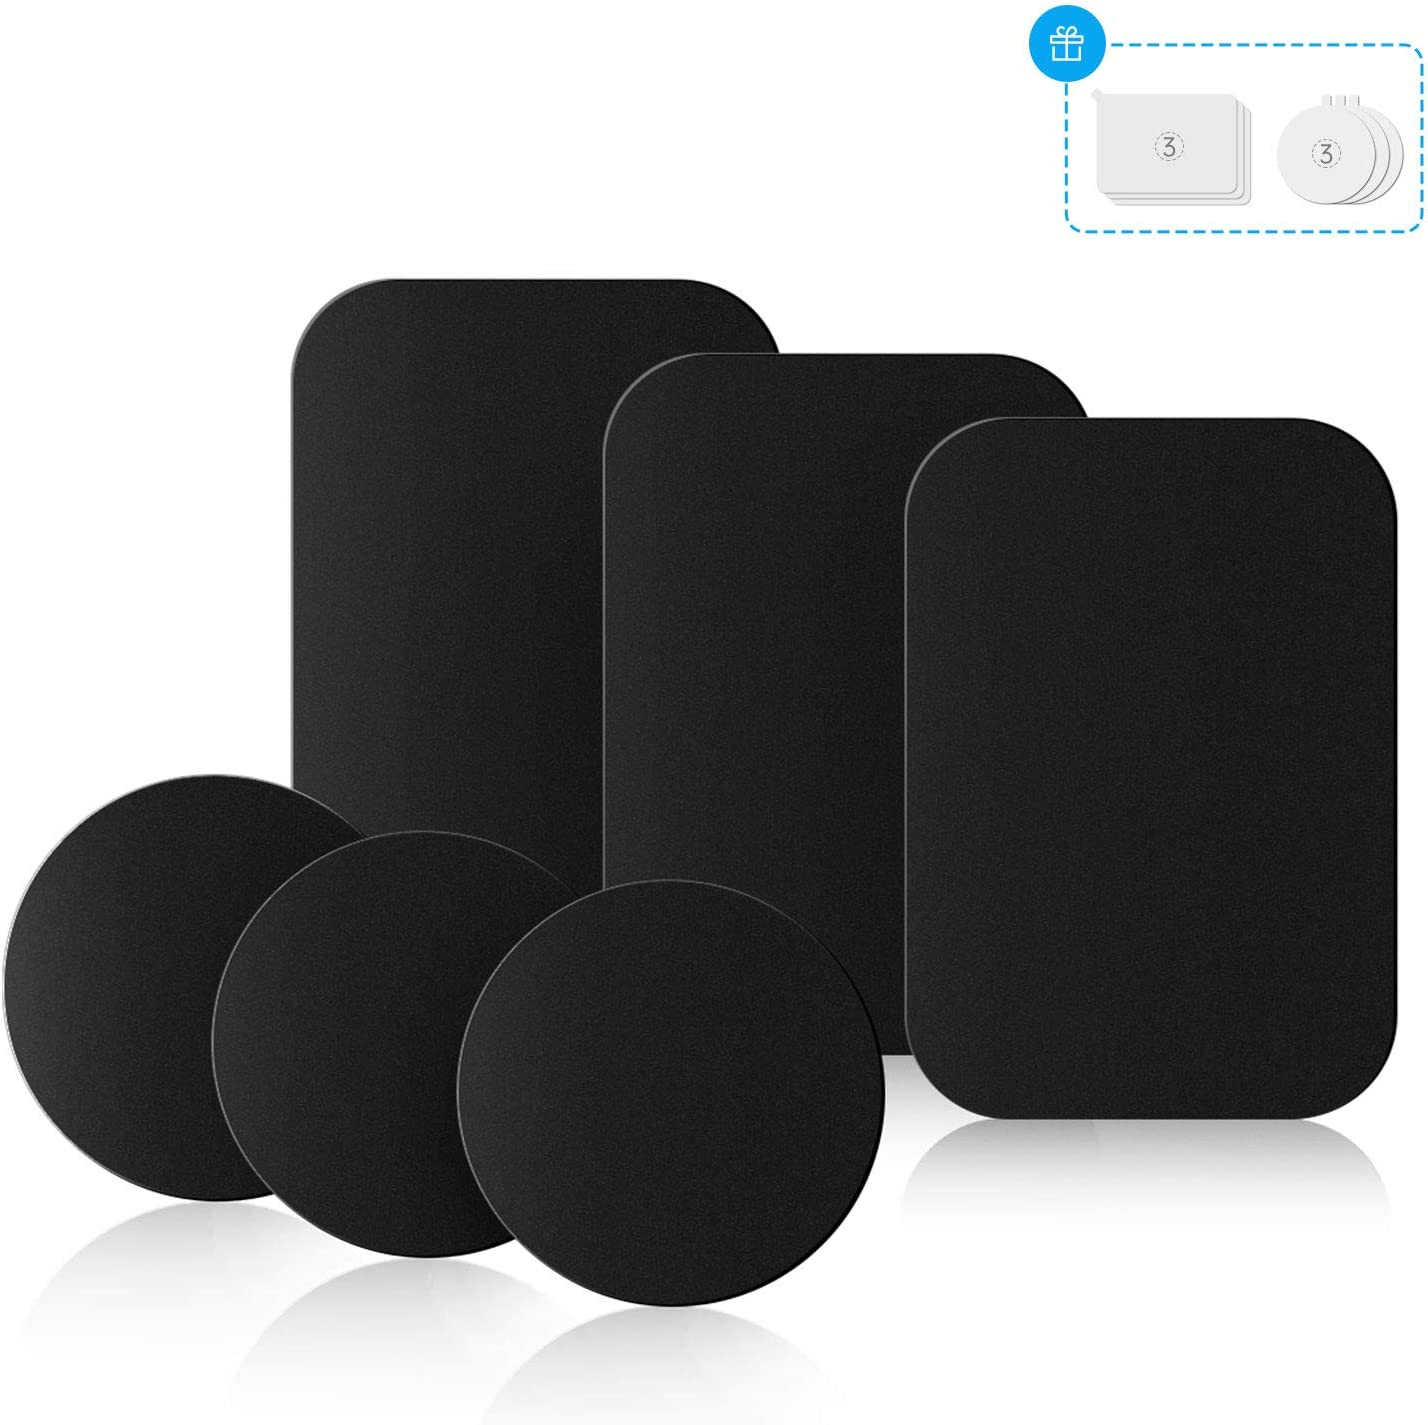 Mount Metal Plates with Protective Films 8 Black Metal Plates and 8 Clear Films 8 Pack Universal Metal Disc for Phone Magnetic Car Mount Replacement Sticker